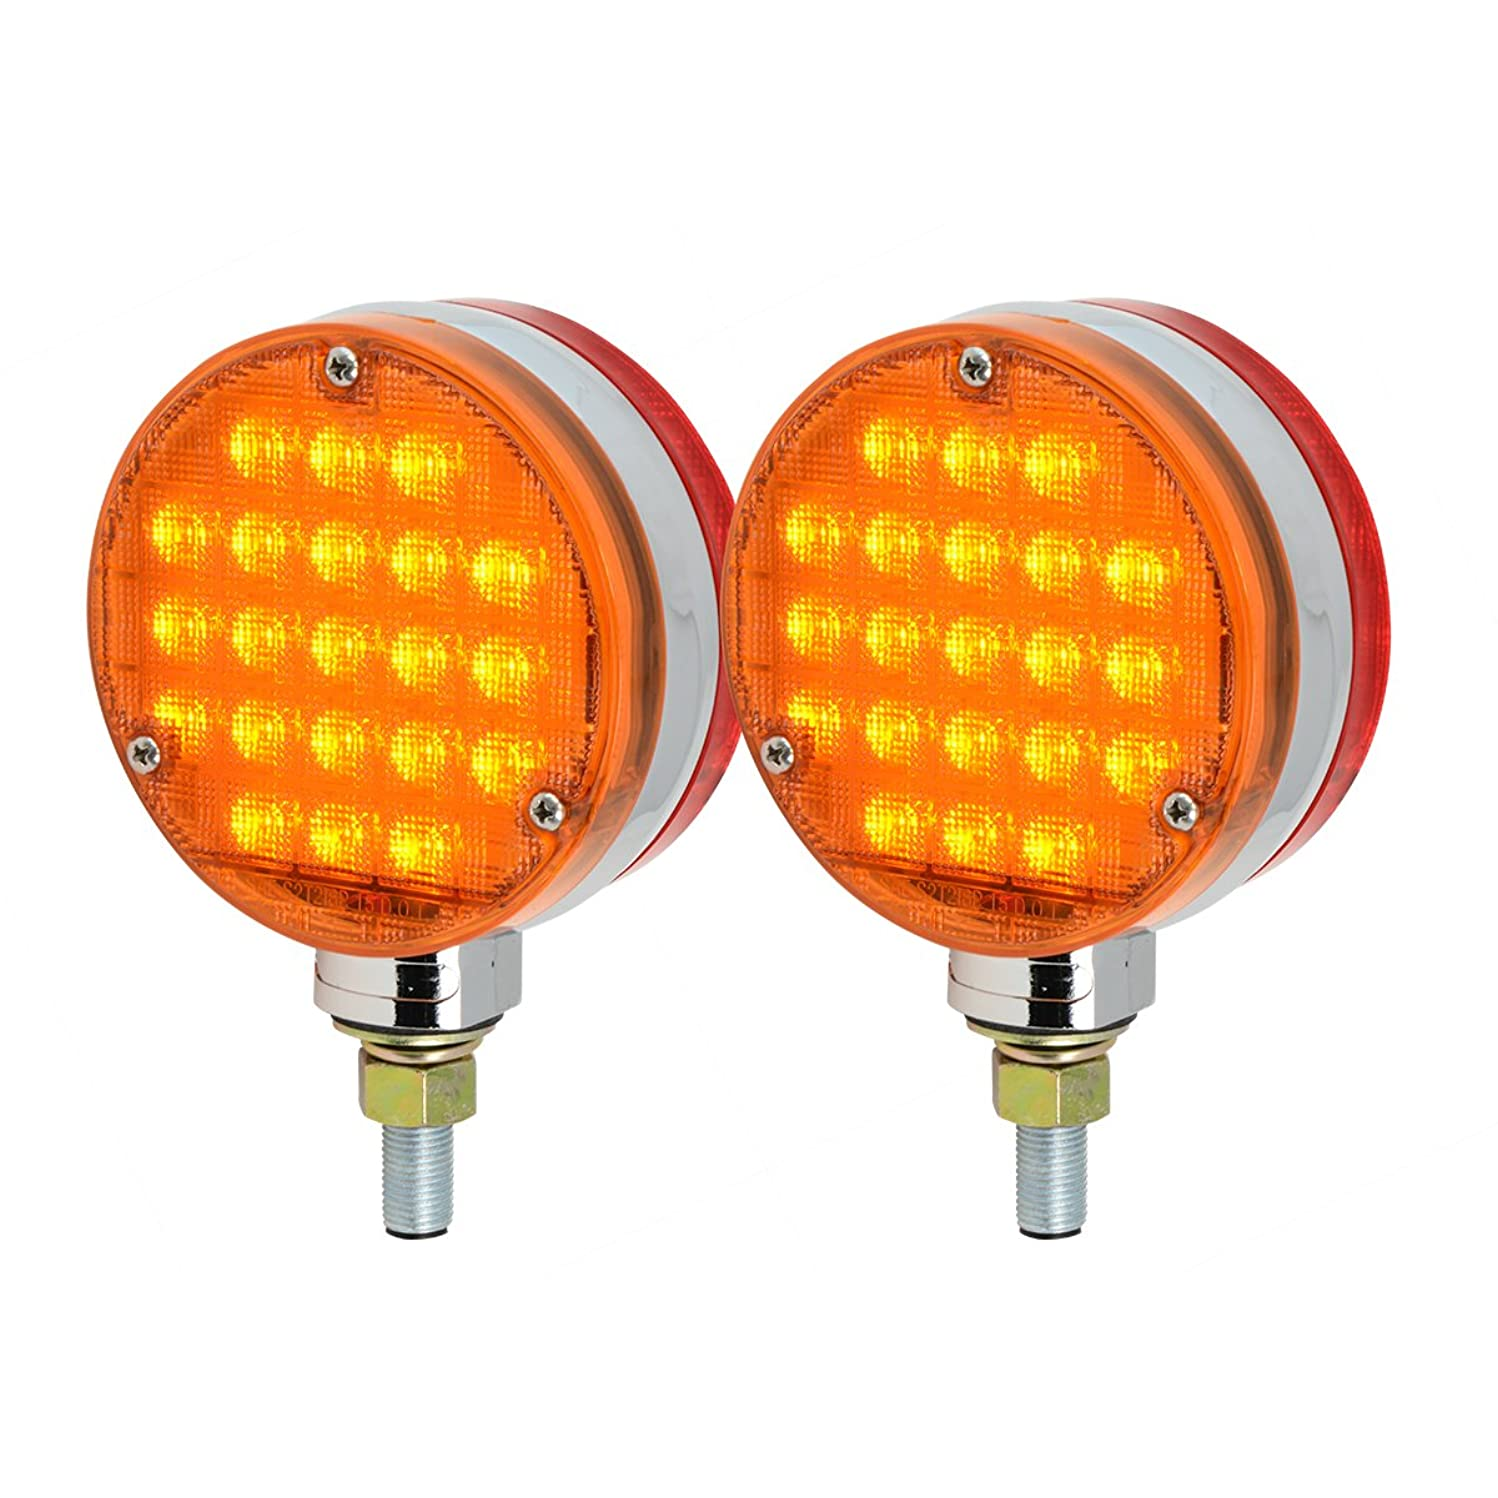 "GG Grand General Grand General 74704 4"" Smart Dynamic Double Face Amber/Red LED Pedestal Light for Truck, Towing, Trailer, RV and Bus – Twin Pack, 2"